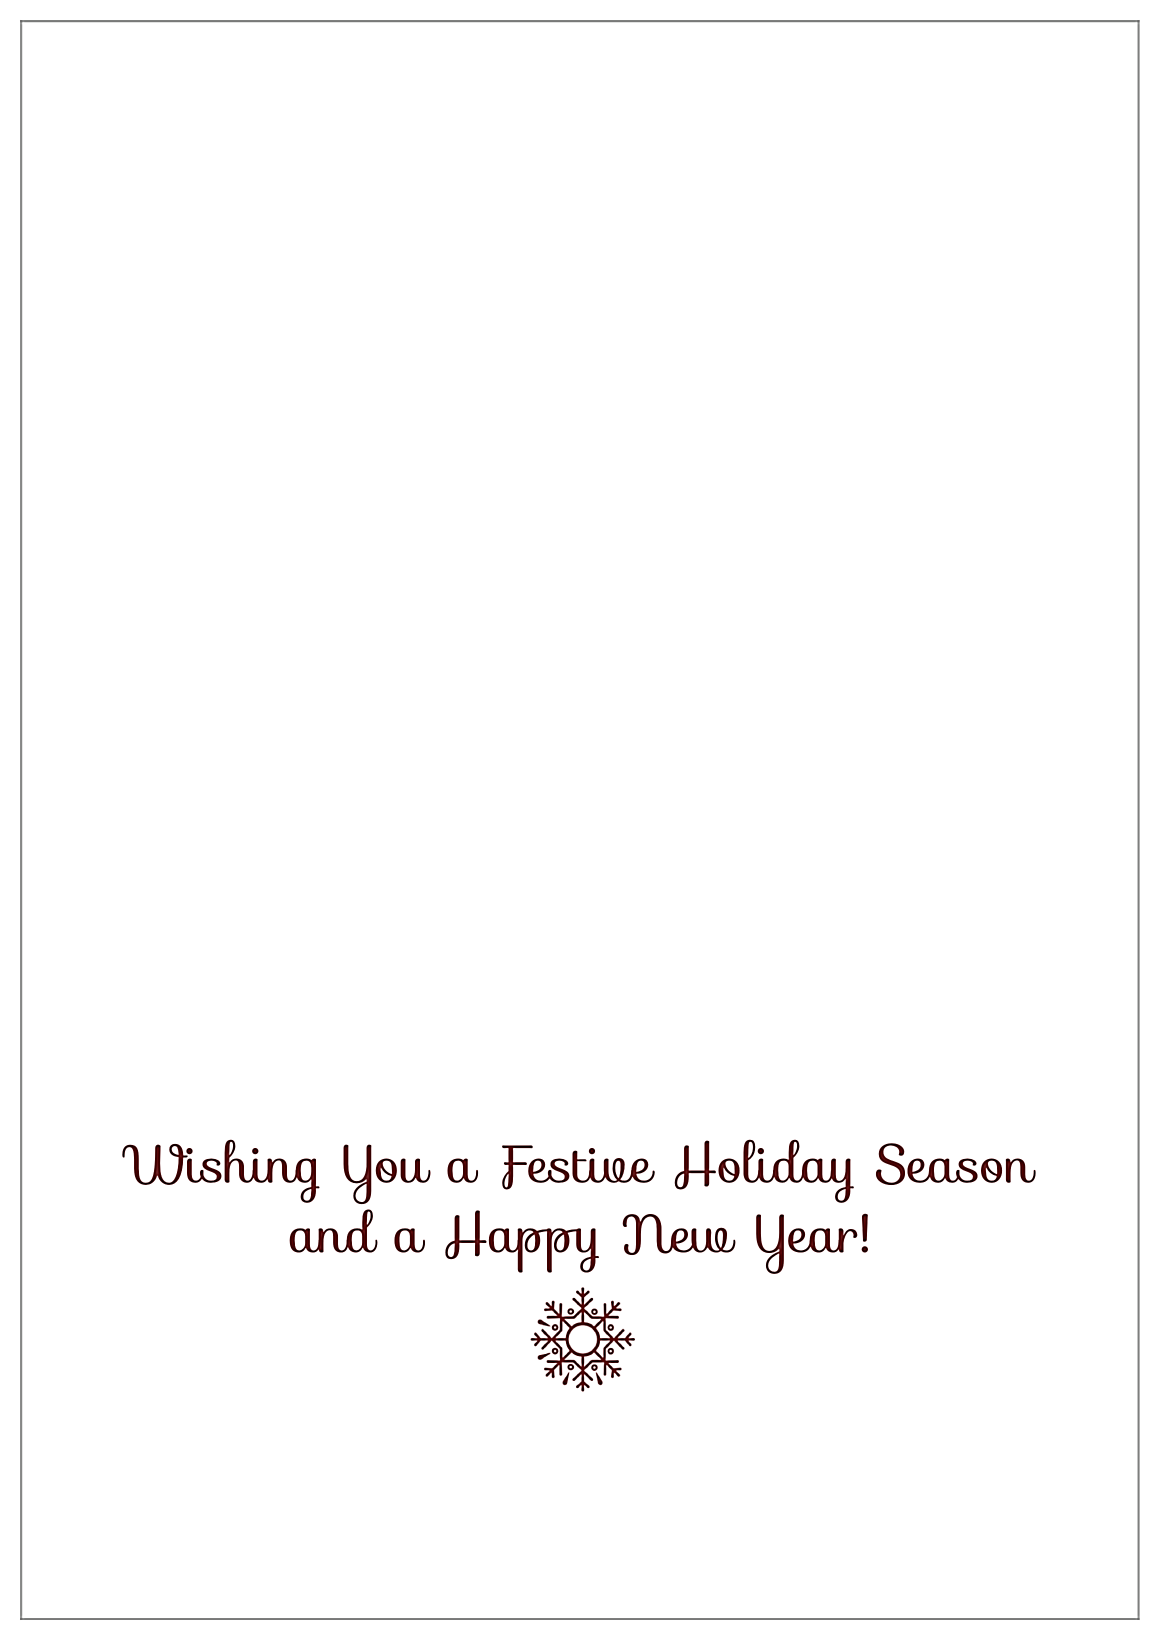 Holiday Flakes back - Greeting Cards Maker